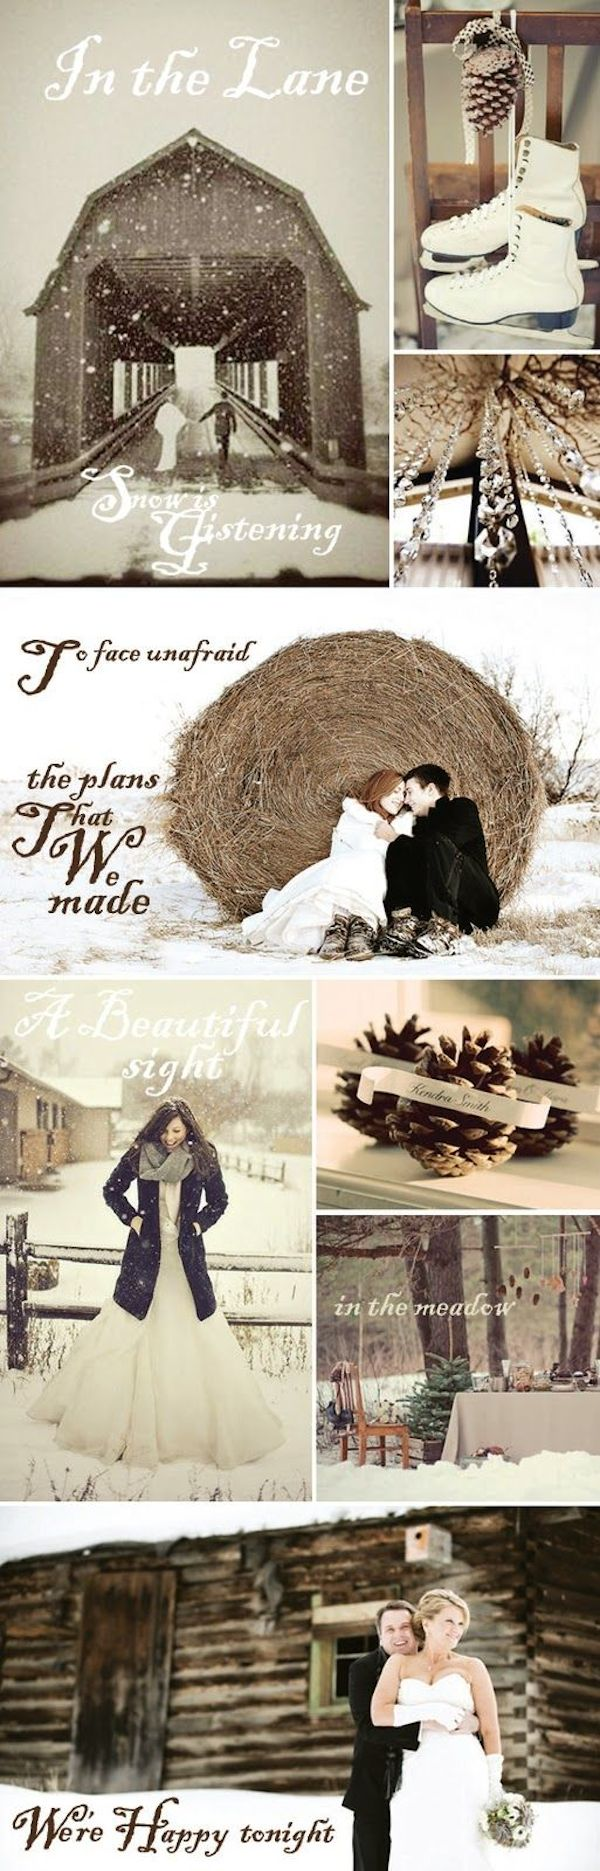 winter-wedding-ideas-vintage-winter-wedding-20